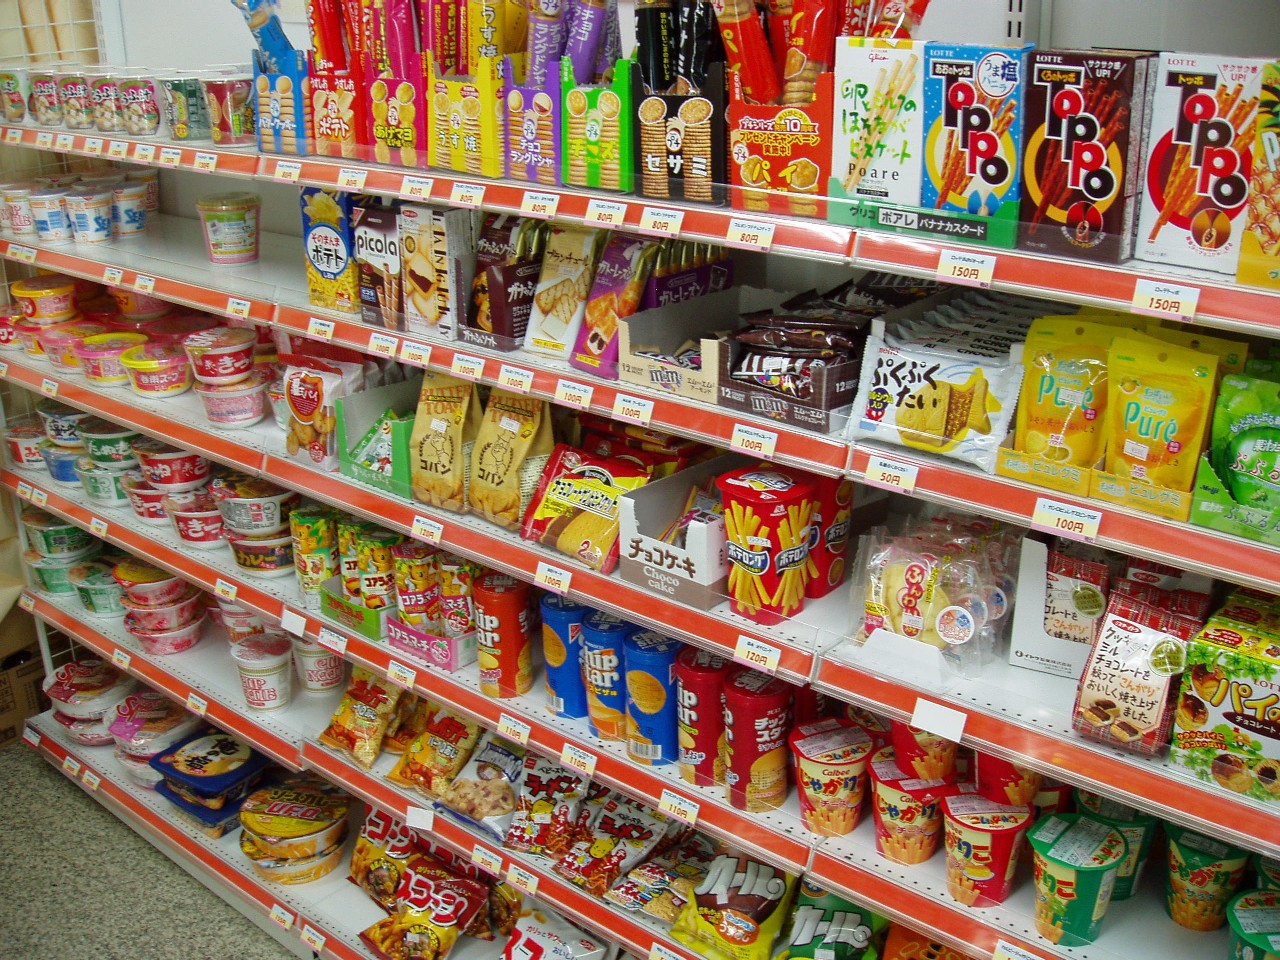 Typical snack shelf at a Japanese convenience store. I couldn't even tell you what all of these are, but I can tell you that they're likely all delicious. It's like munchie paradise.